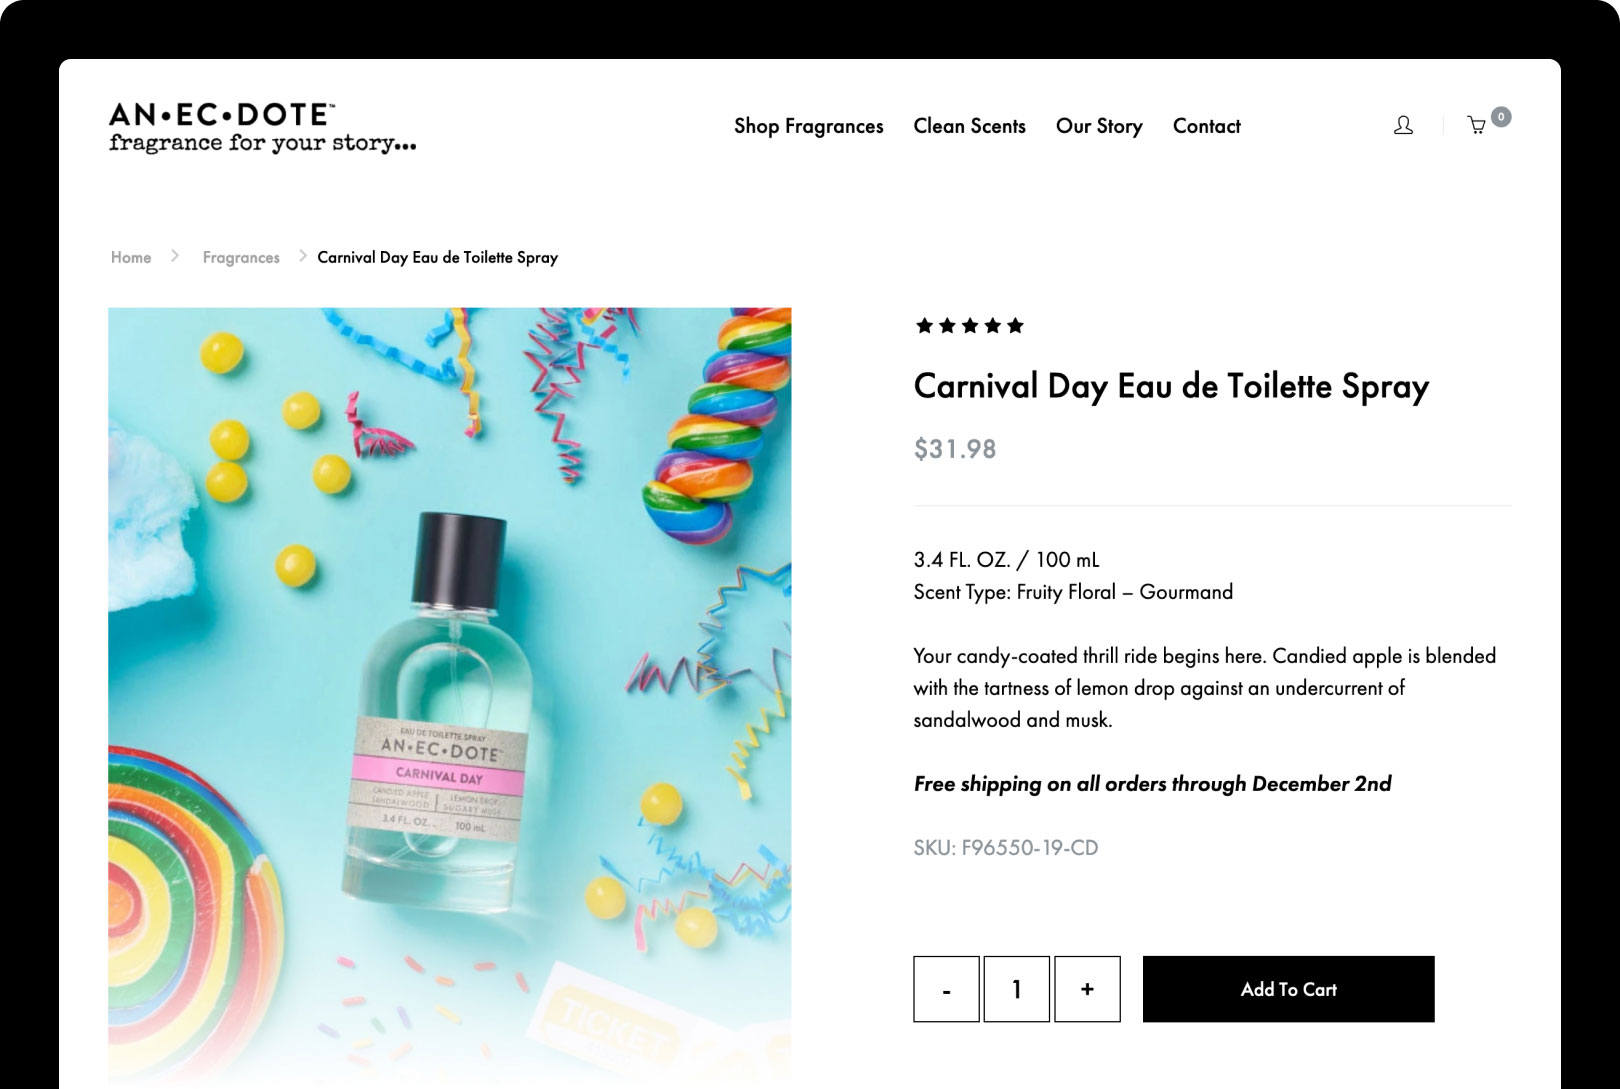 Anecdote Fragrances Product Page